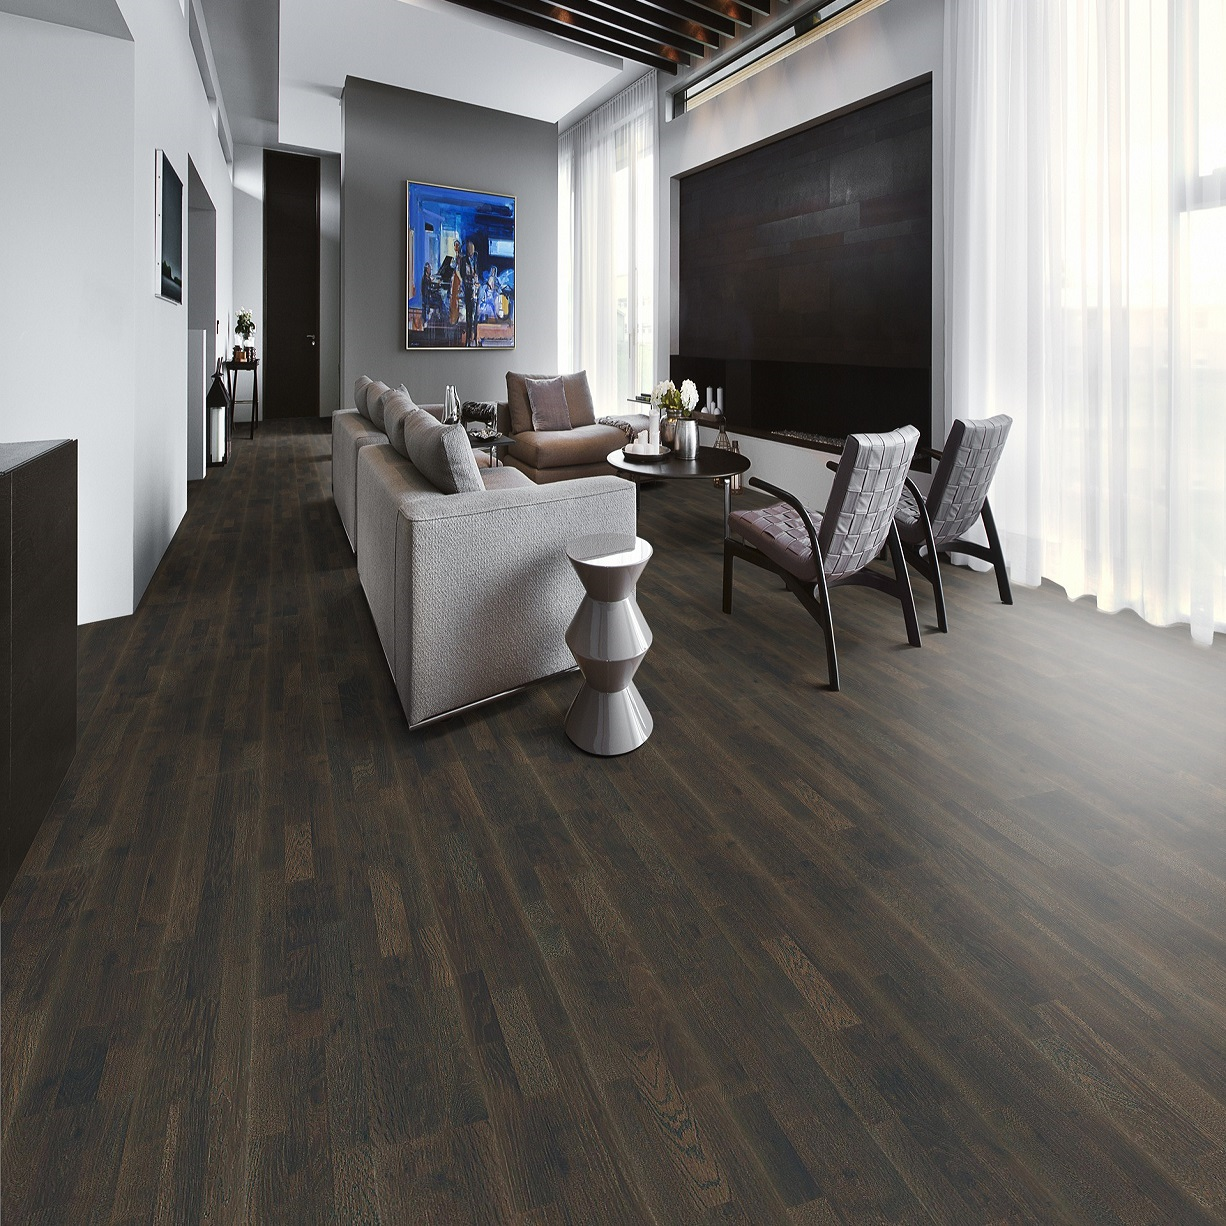 texana oiled tione brown smoked floor light chevron engineered flooring kahrs swedish oak brushed